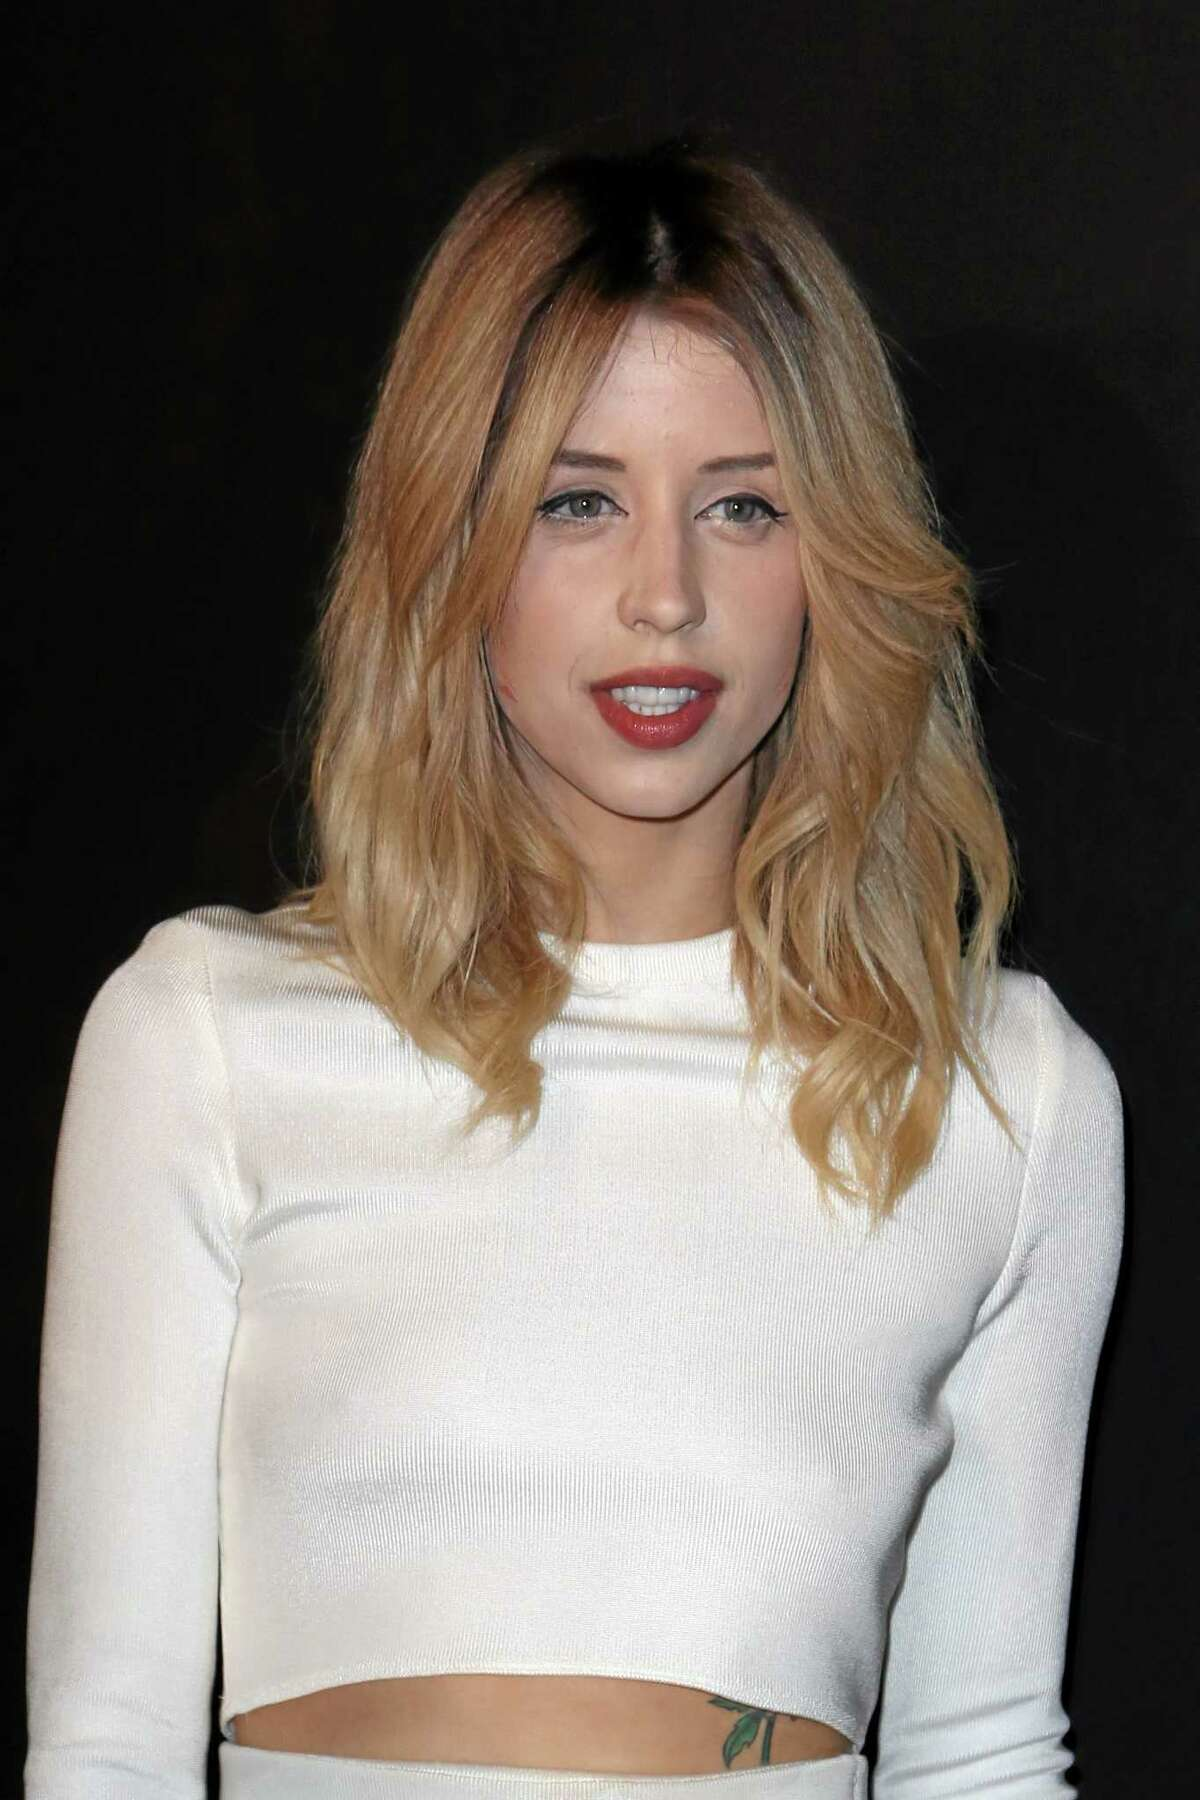 Peaches Geldof arrives to attend the ETAM's ready to wear fall/winter 2014-2015 fashion collection presented in Paris in February 2014. Entertainer Bob Geldof's agent says his 25-year-old daughter Peaches has died.